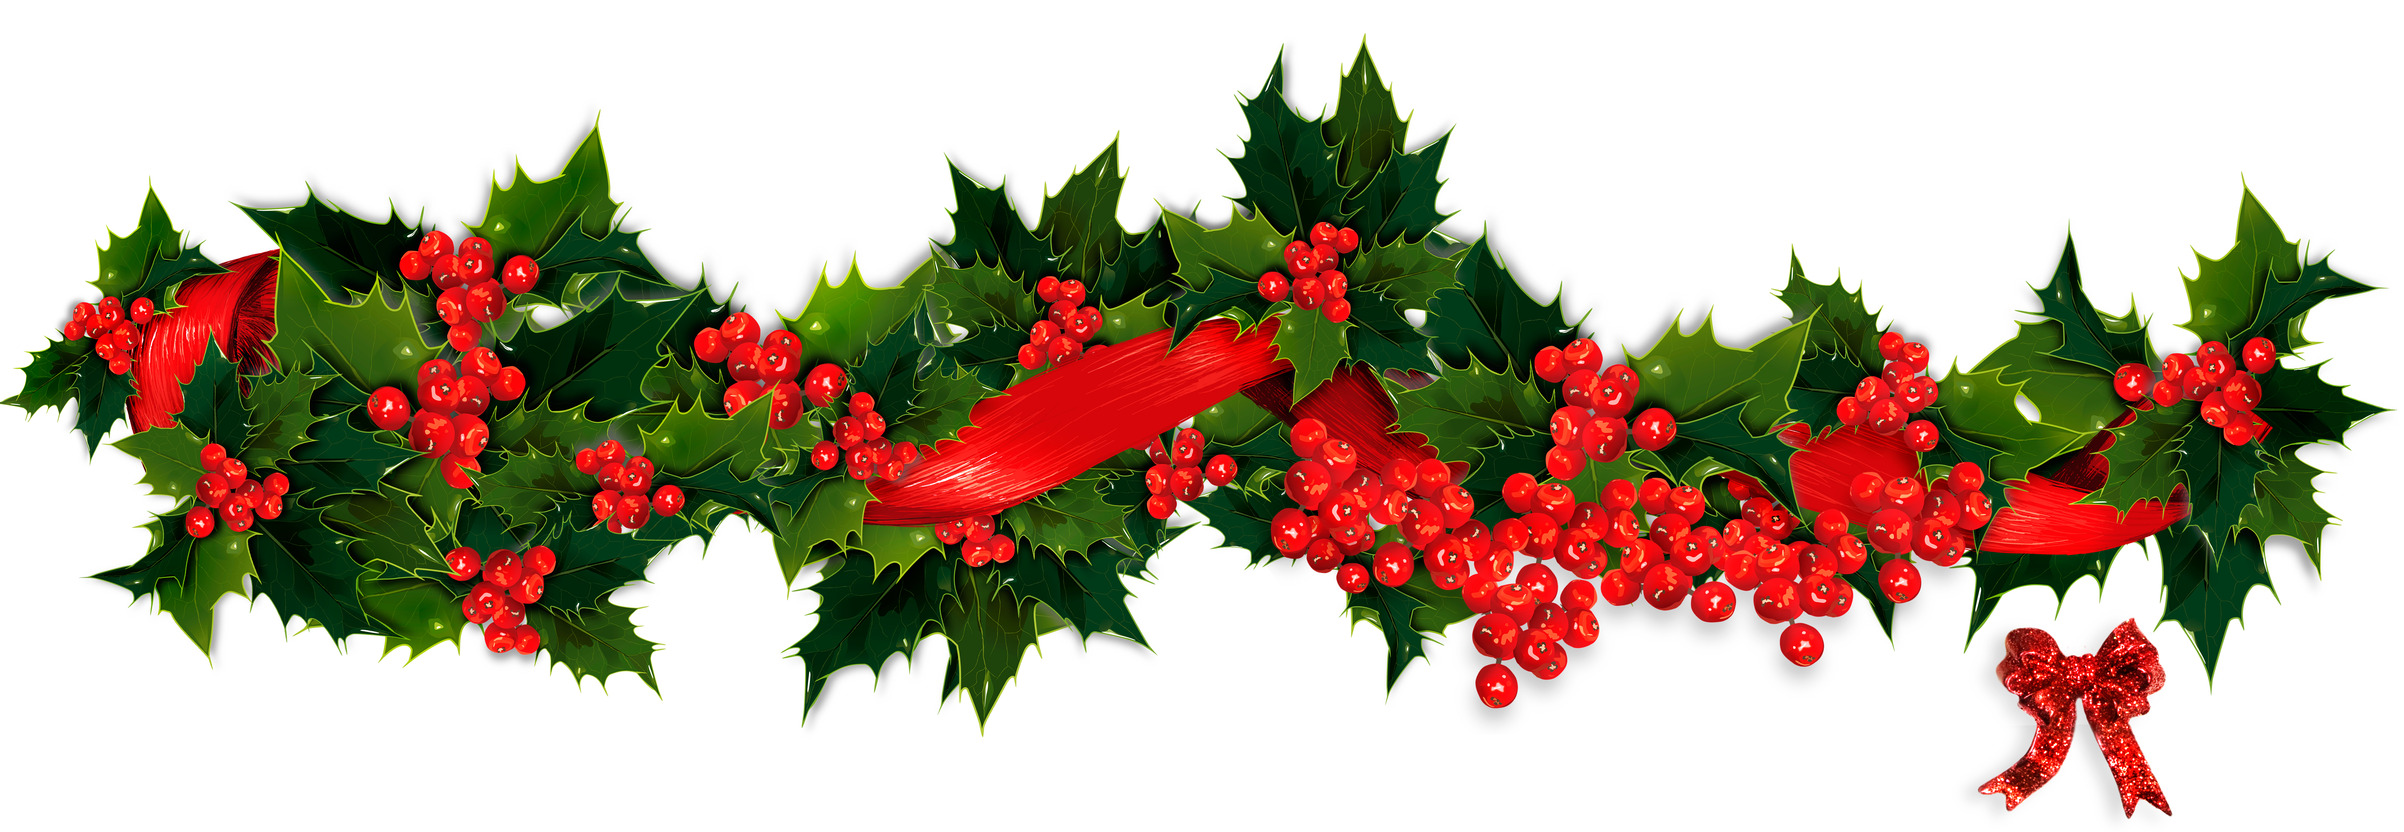 2404x832 Create No Christmas Sprout Garland And Decorations Dark Green Red